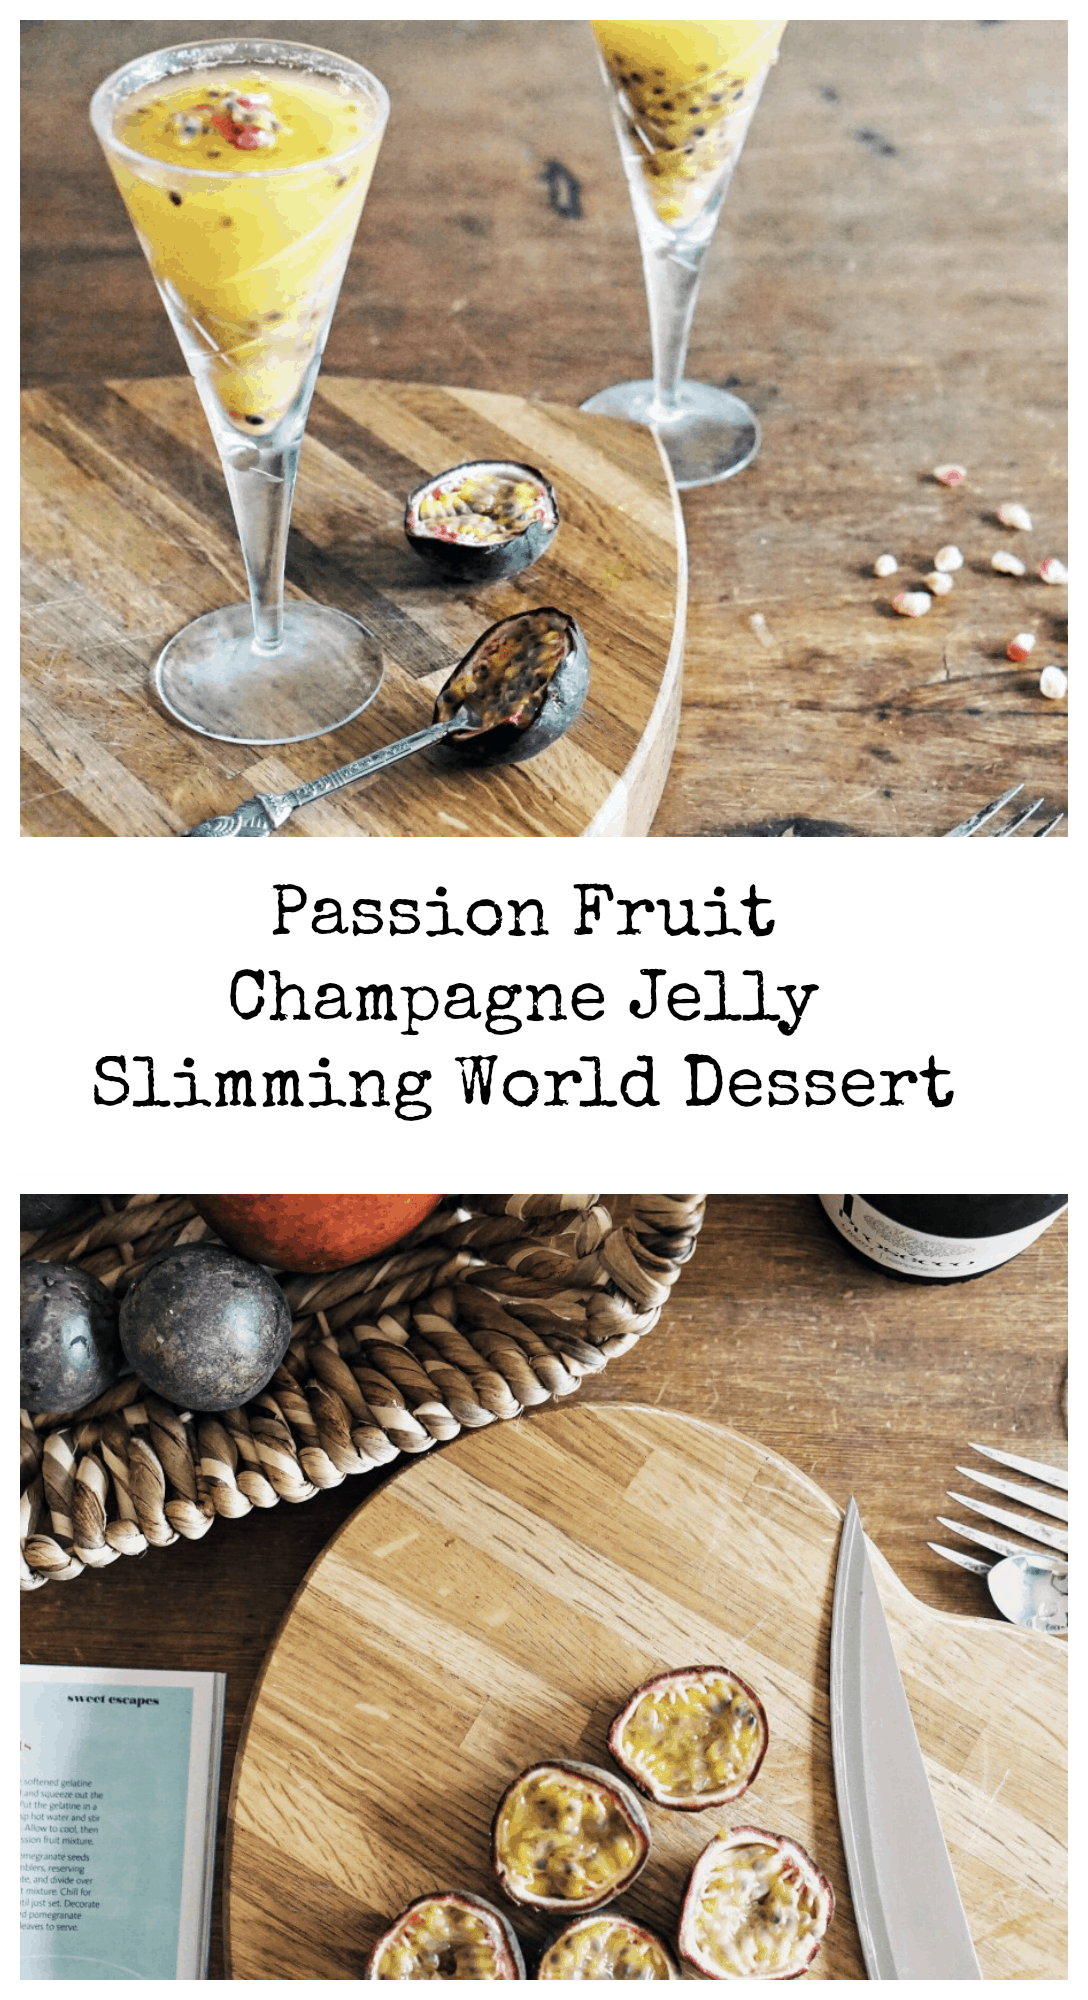 Passion Fruit Champagne Jelly, Slimming World Dessert an easy to make low fat dessert perfect for summer BBQs and dinner parties.